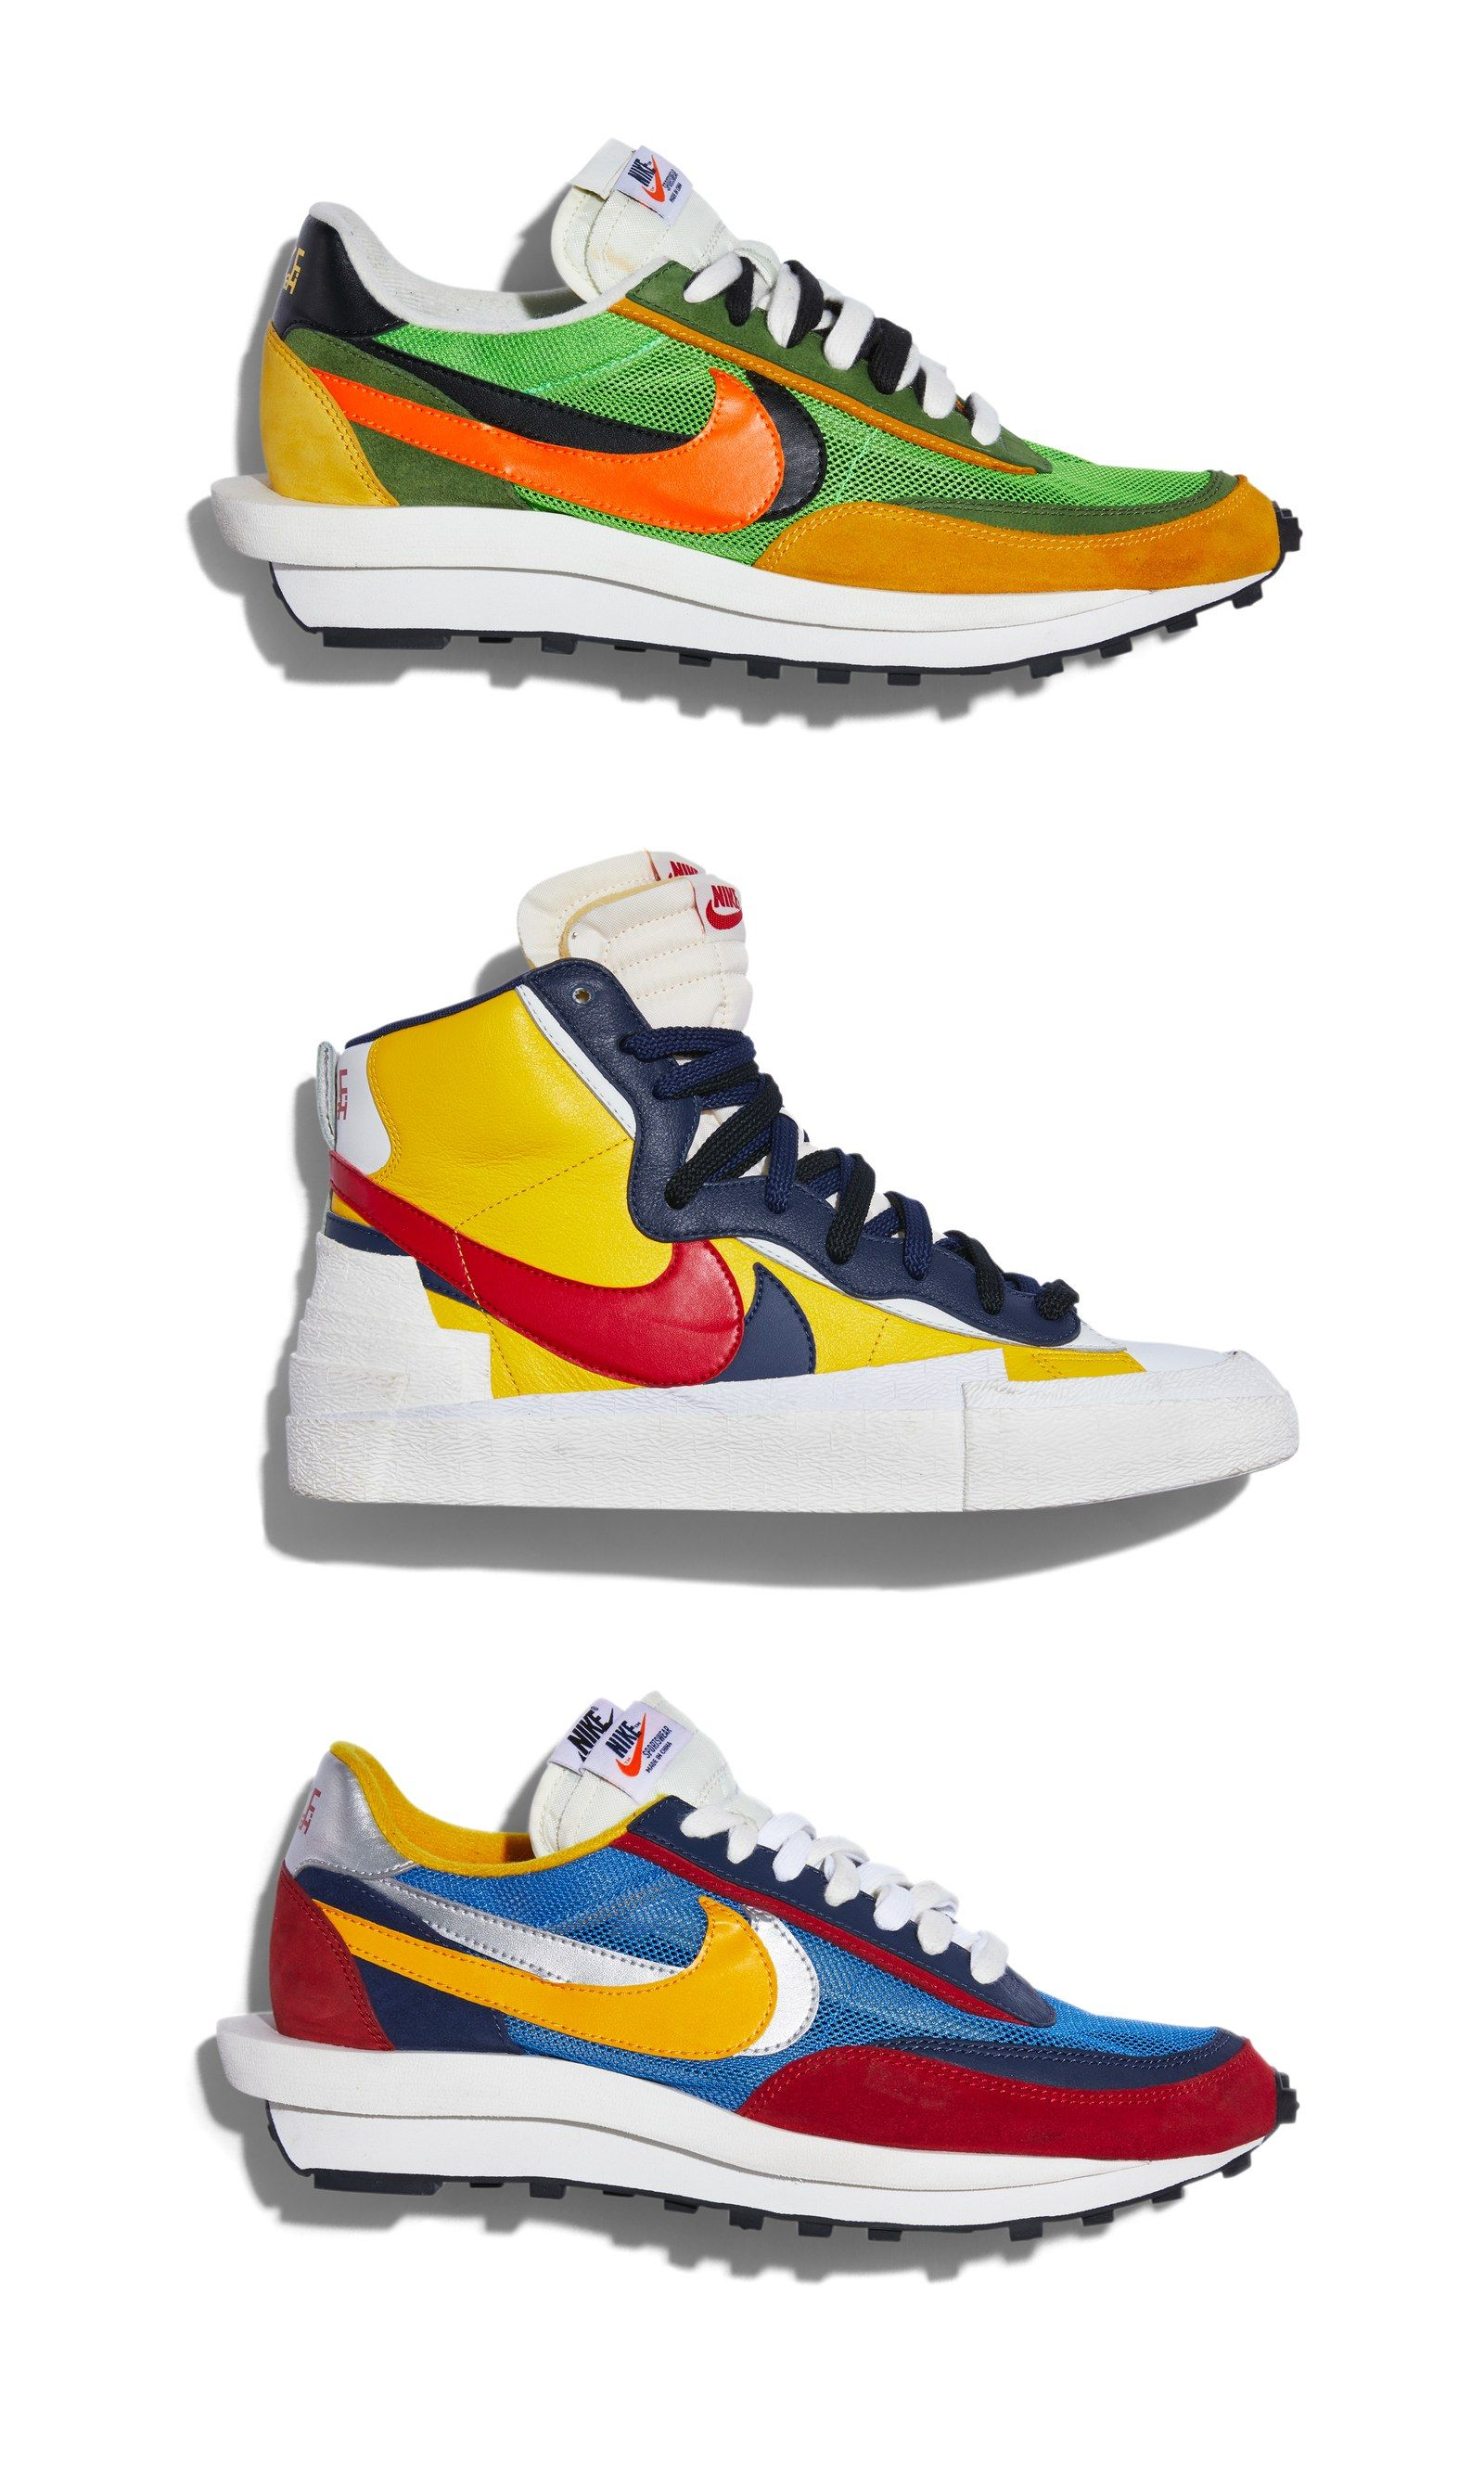 d887421f77 Each Chitose Abe-designed Sacai and Nike model crashes together two iconic  swoosh designs  the LDV and the Daybreak